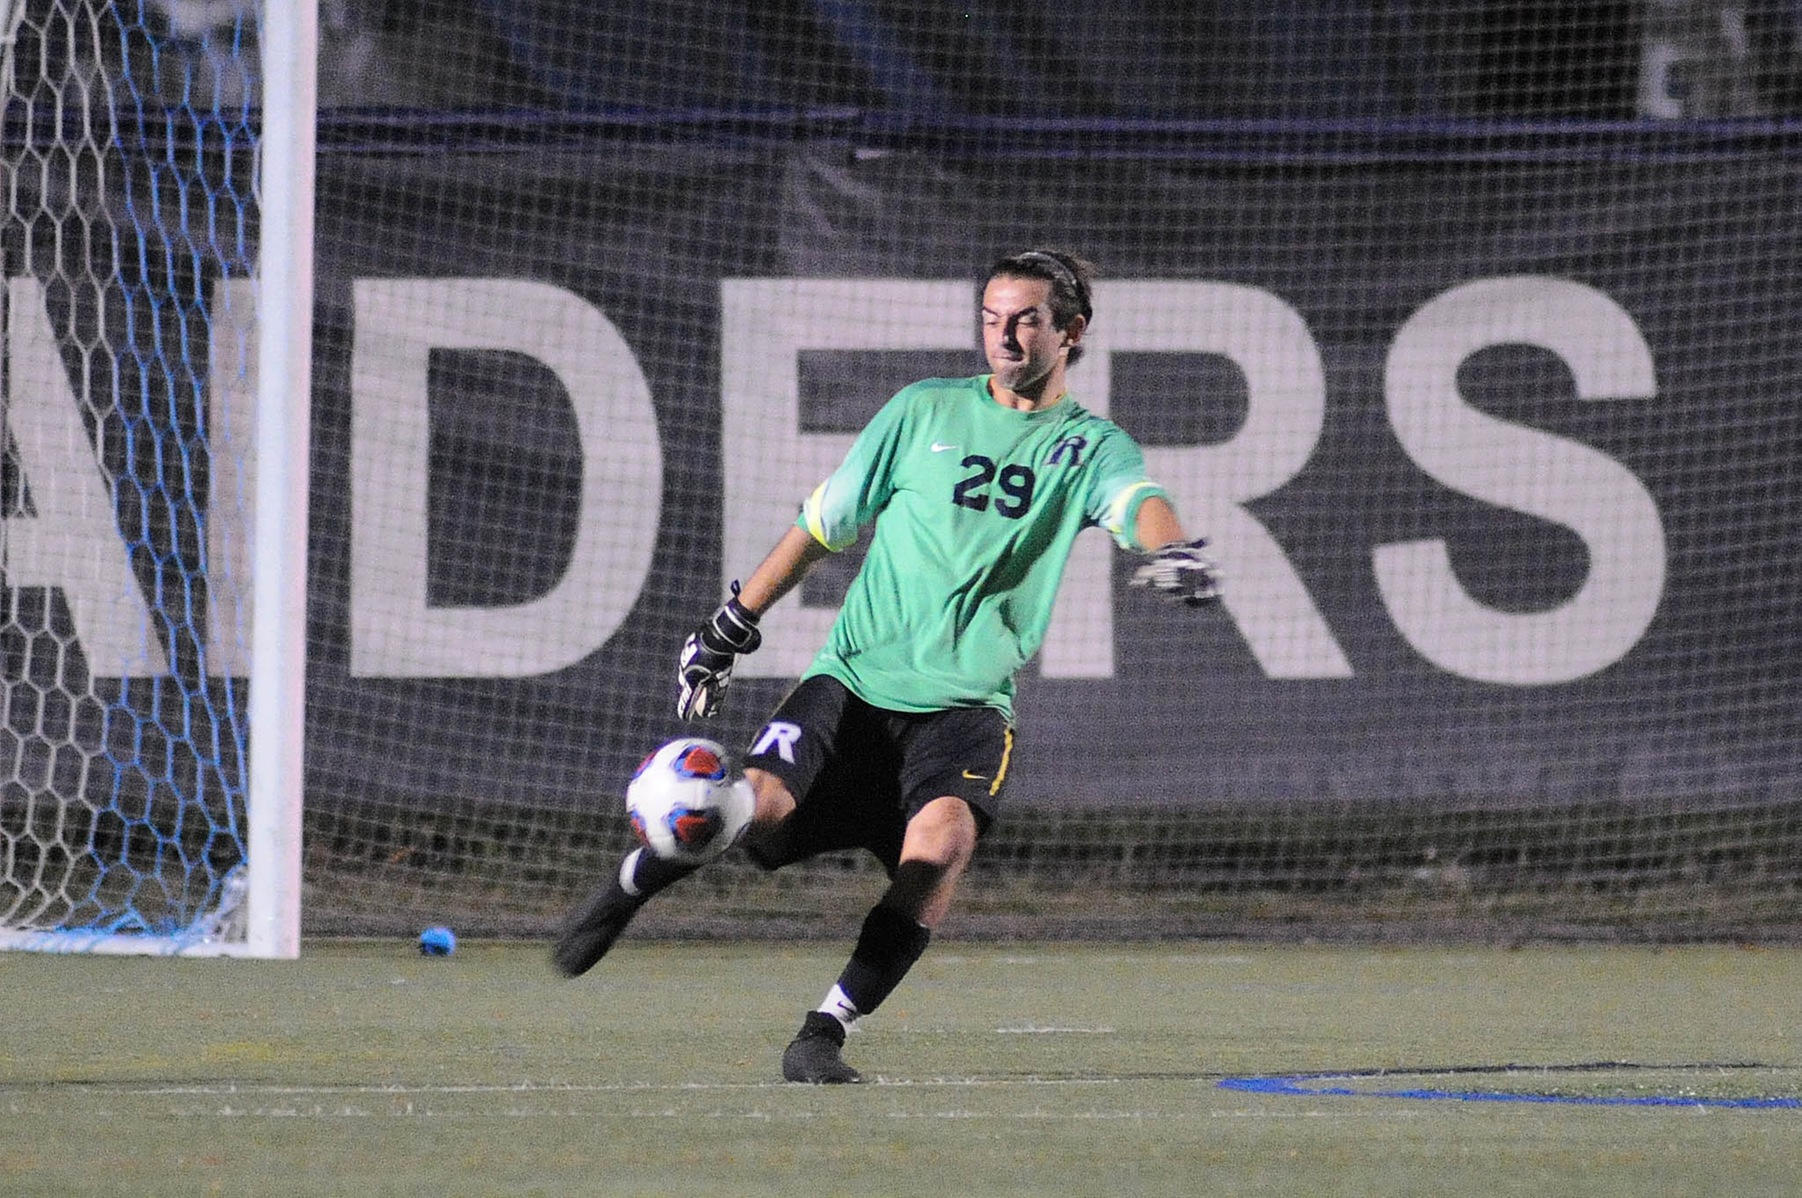 Men's Soccer: Hasenfus guides Raiders to 0-0 tie vs Fitchburg State